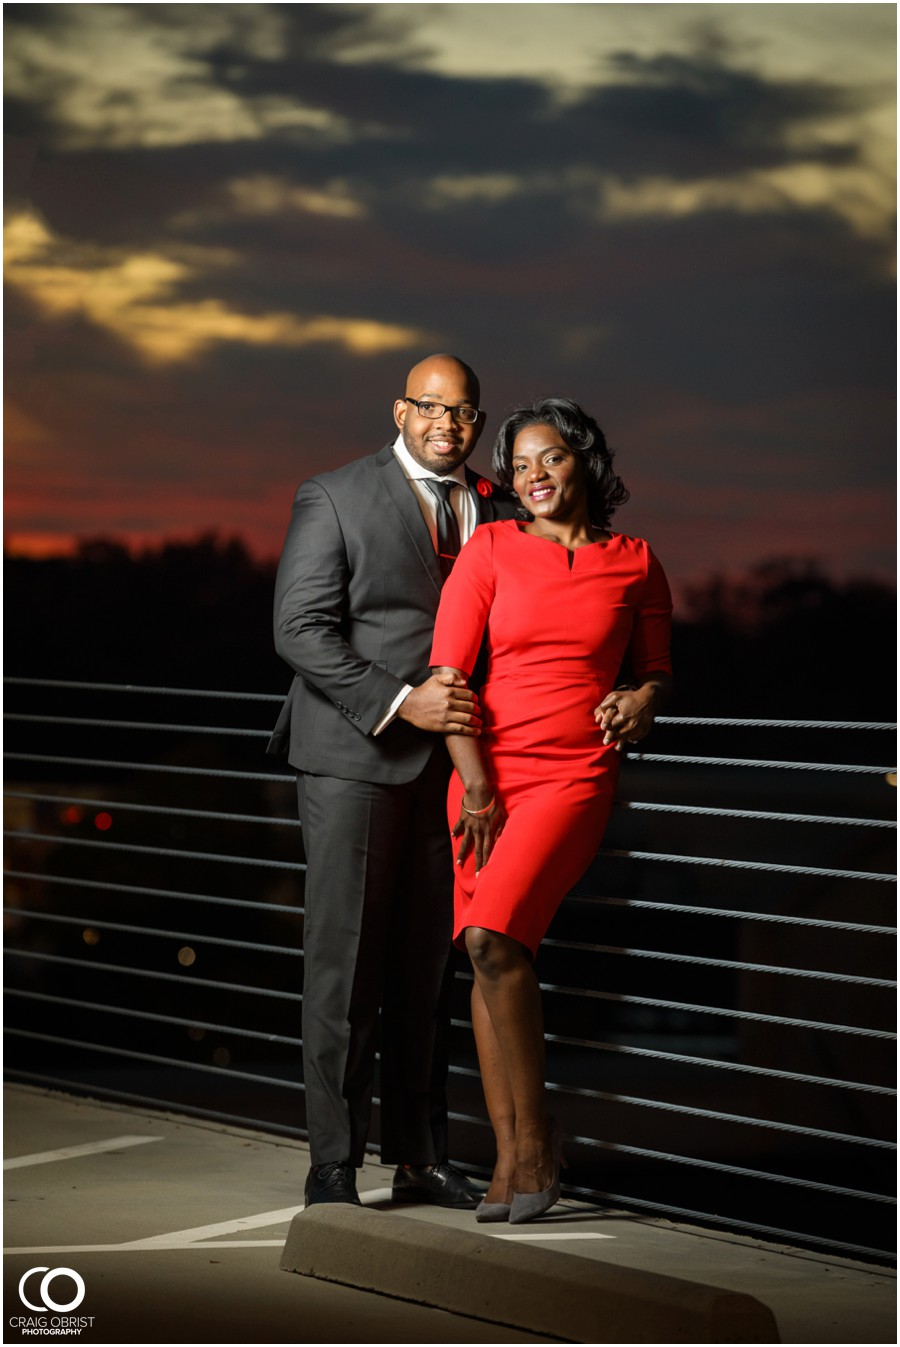 Victory World Church Atlanta Engagement Portraits Buckhead_0014.jpg